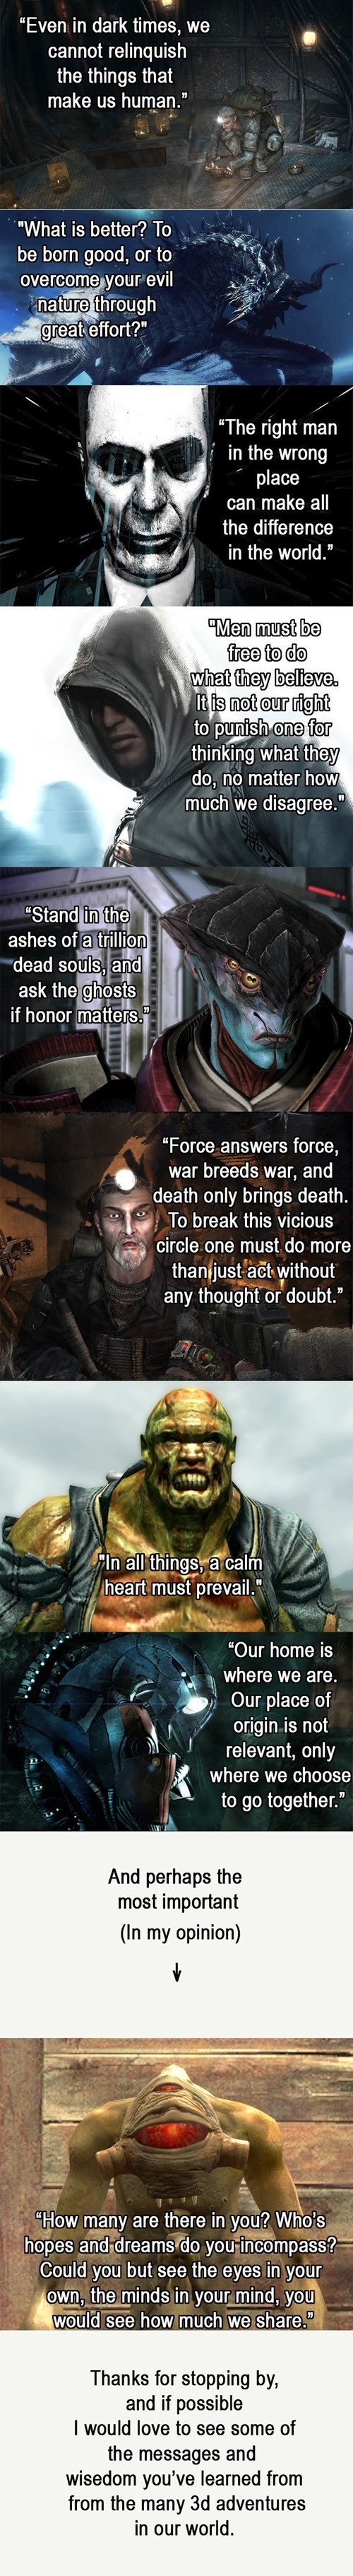 video-games-wisdom-from-games